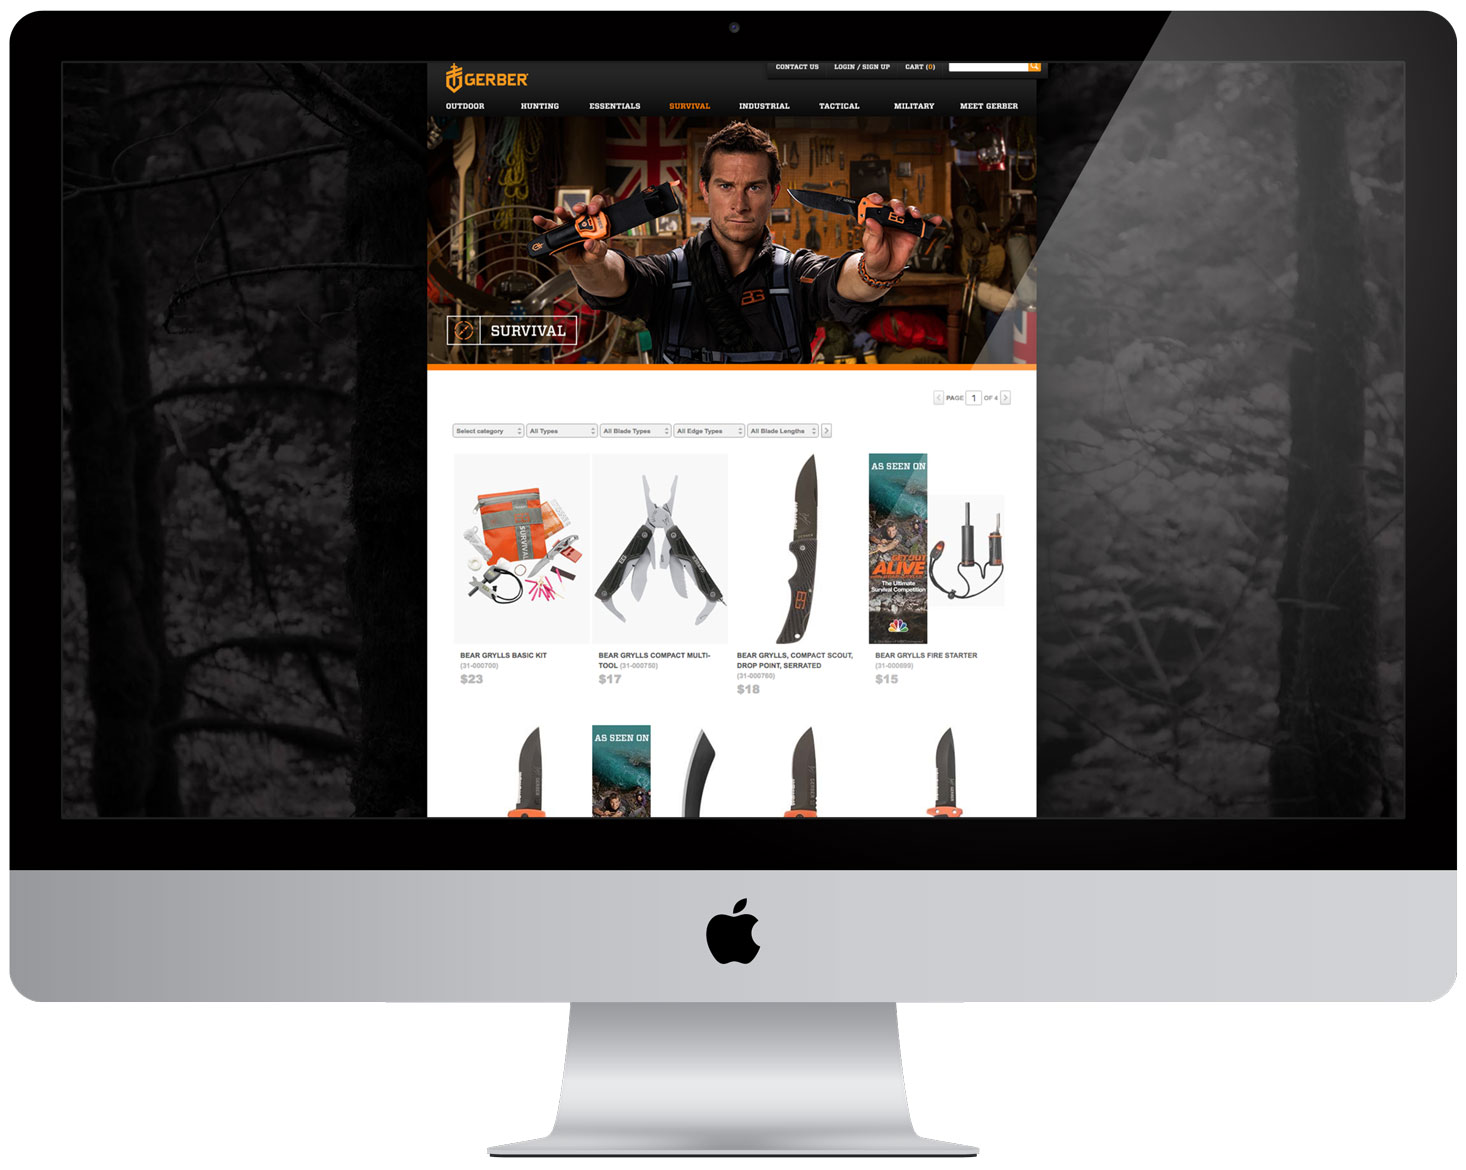 Bear-Grylls-Website.jpg